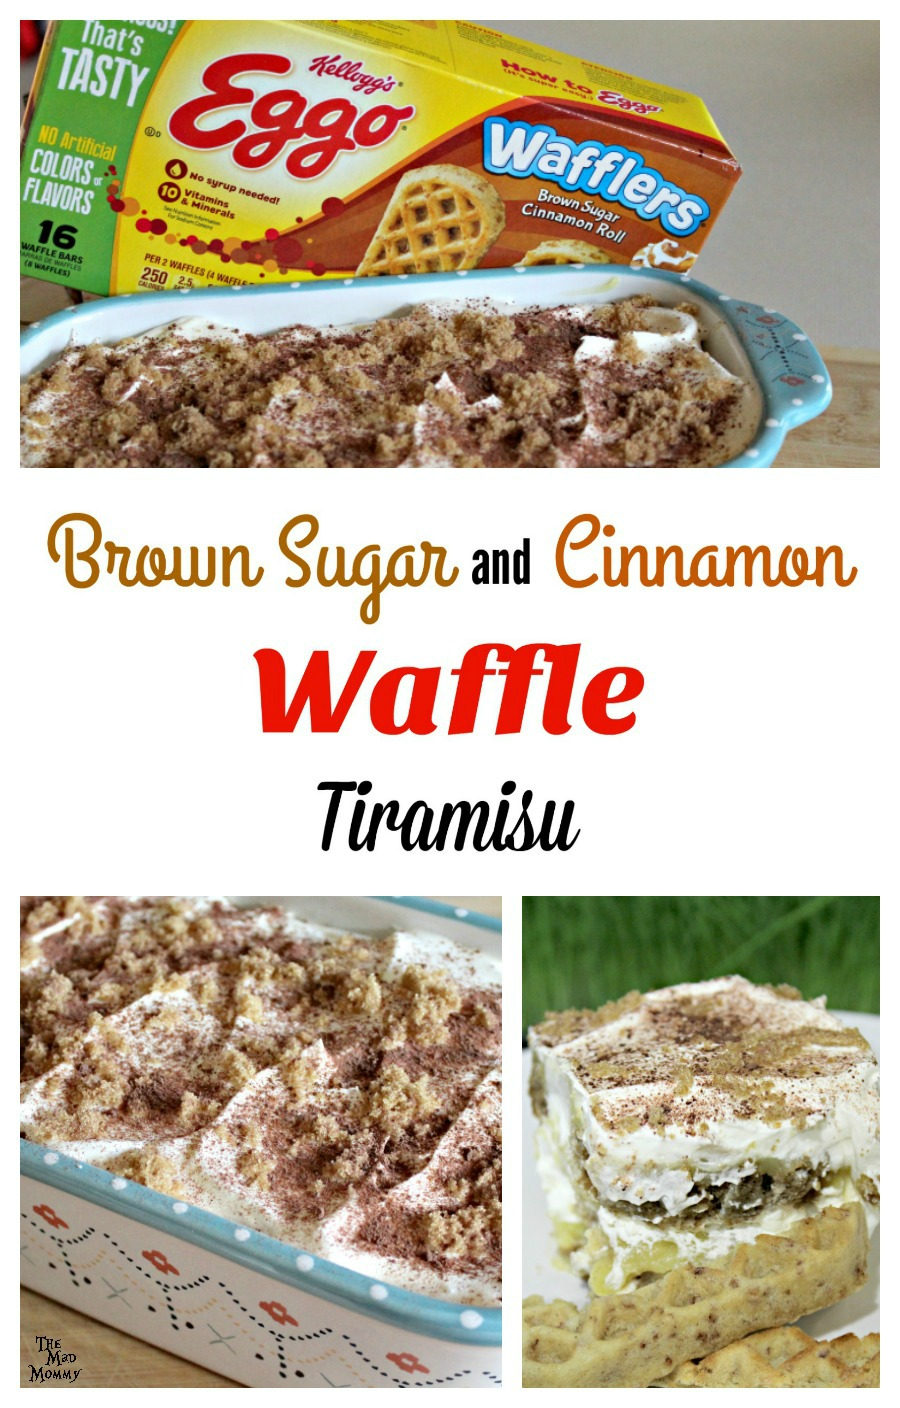 We eat Eggo Waffles, straight out of the toaster, for breakfast quite often, but I wanted to see if there was another way to use them. After thinking about it, while sipping my morning coffee, it hit me: Eggo Waffle Tiramisu! #LeggoMyEggo #HearTheNews #ad